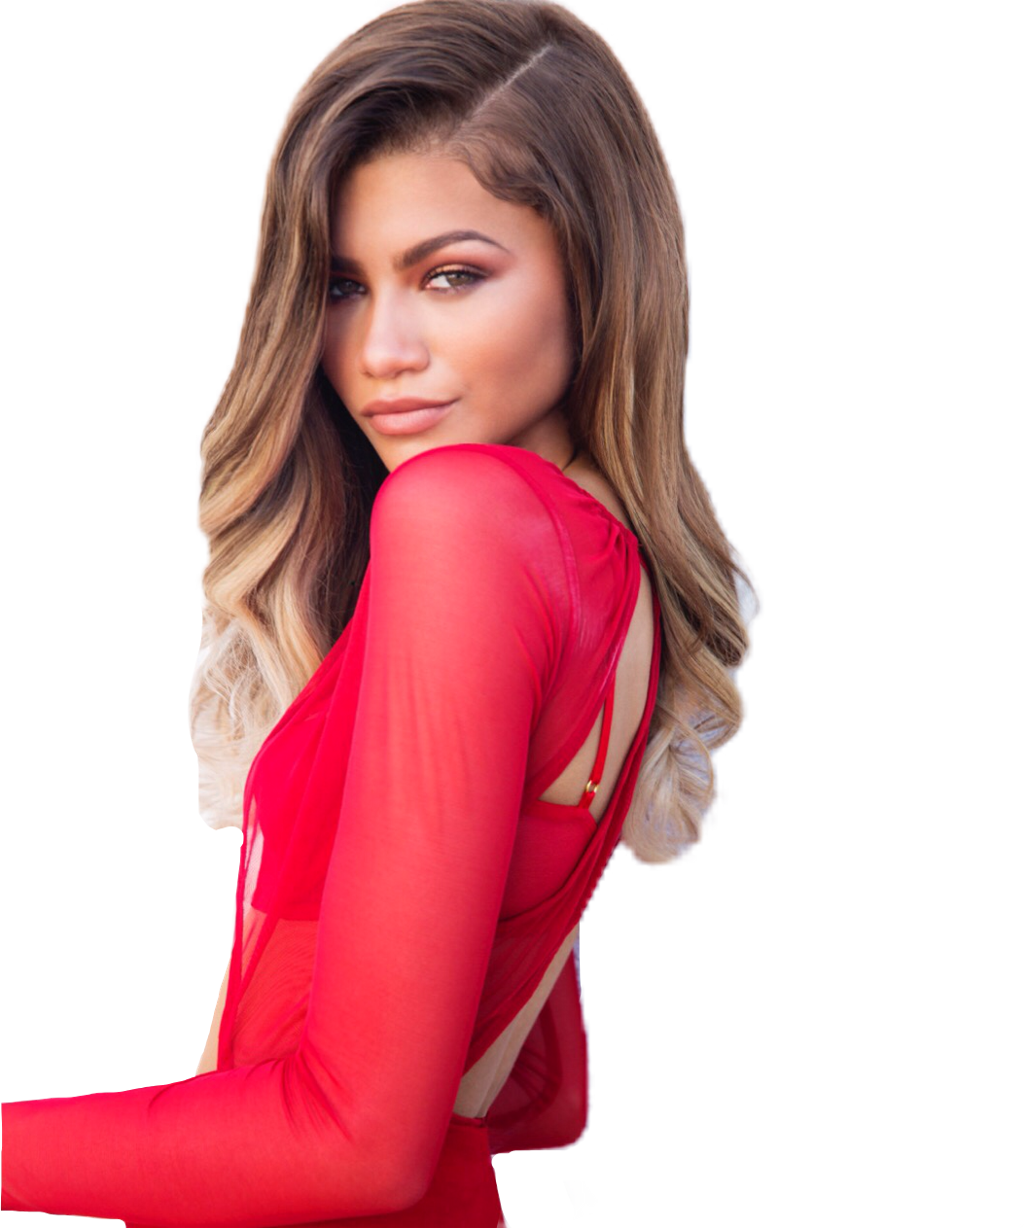 Zendaya transparent photography. Queenzendaya peterparker spidermanhomecoming